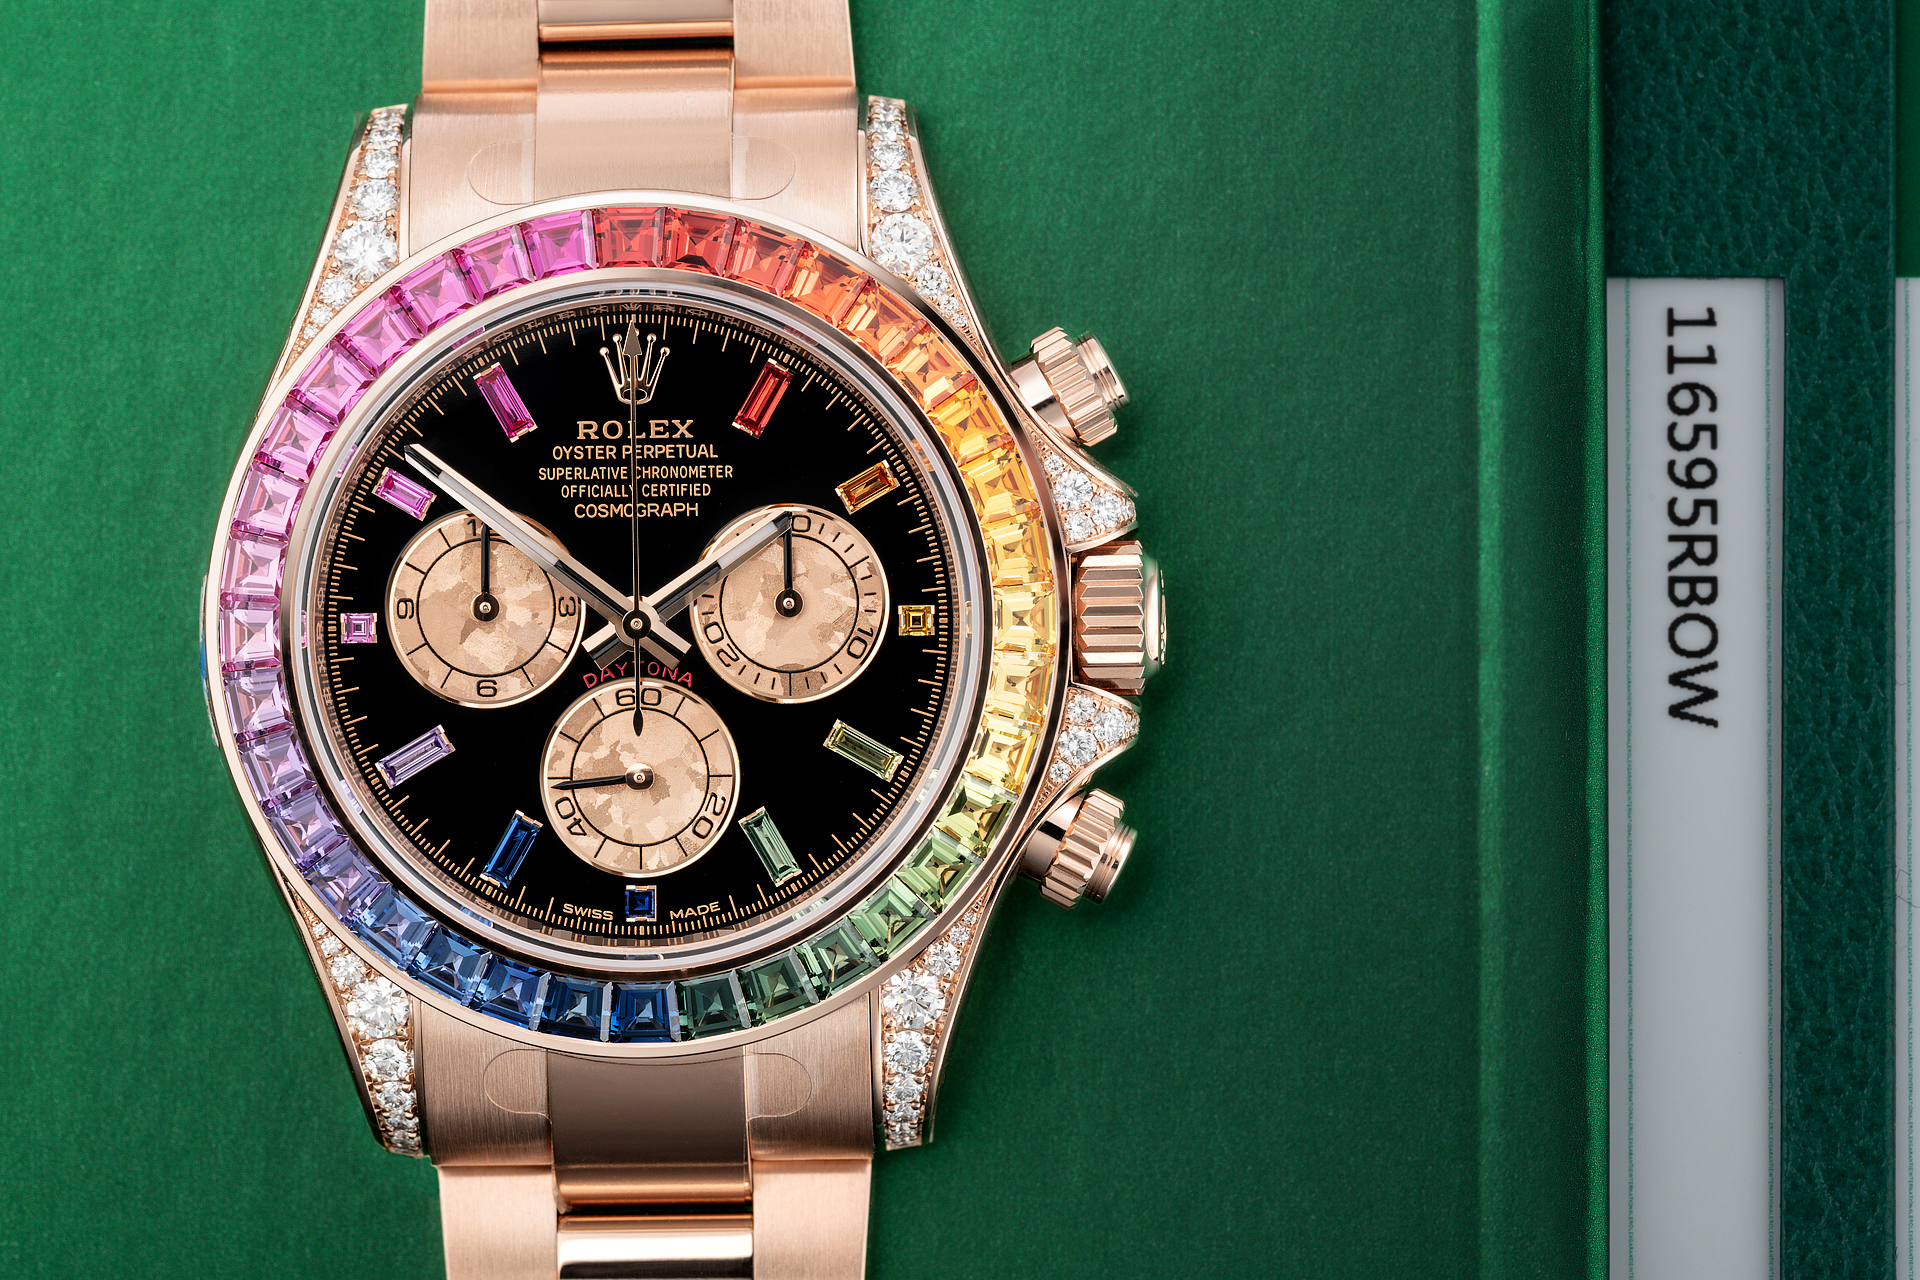 Rolex Prices Uk >> Rolex Cosmograph Daytona Watches | ref 116595RBOW | Brand New 'Very Rare' | The Watch Club